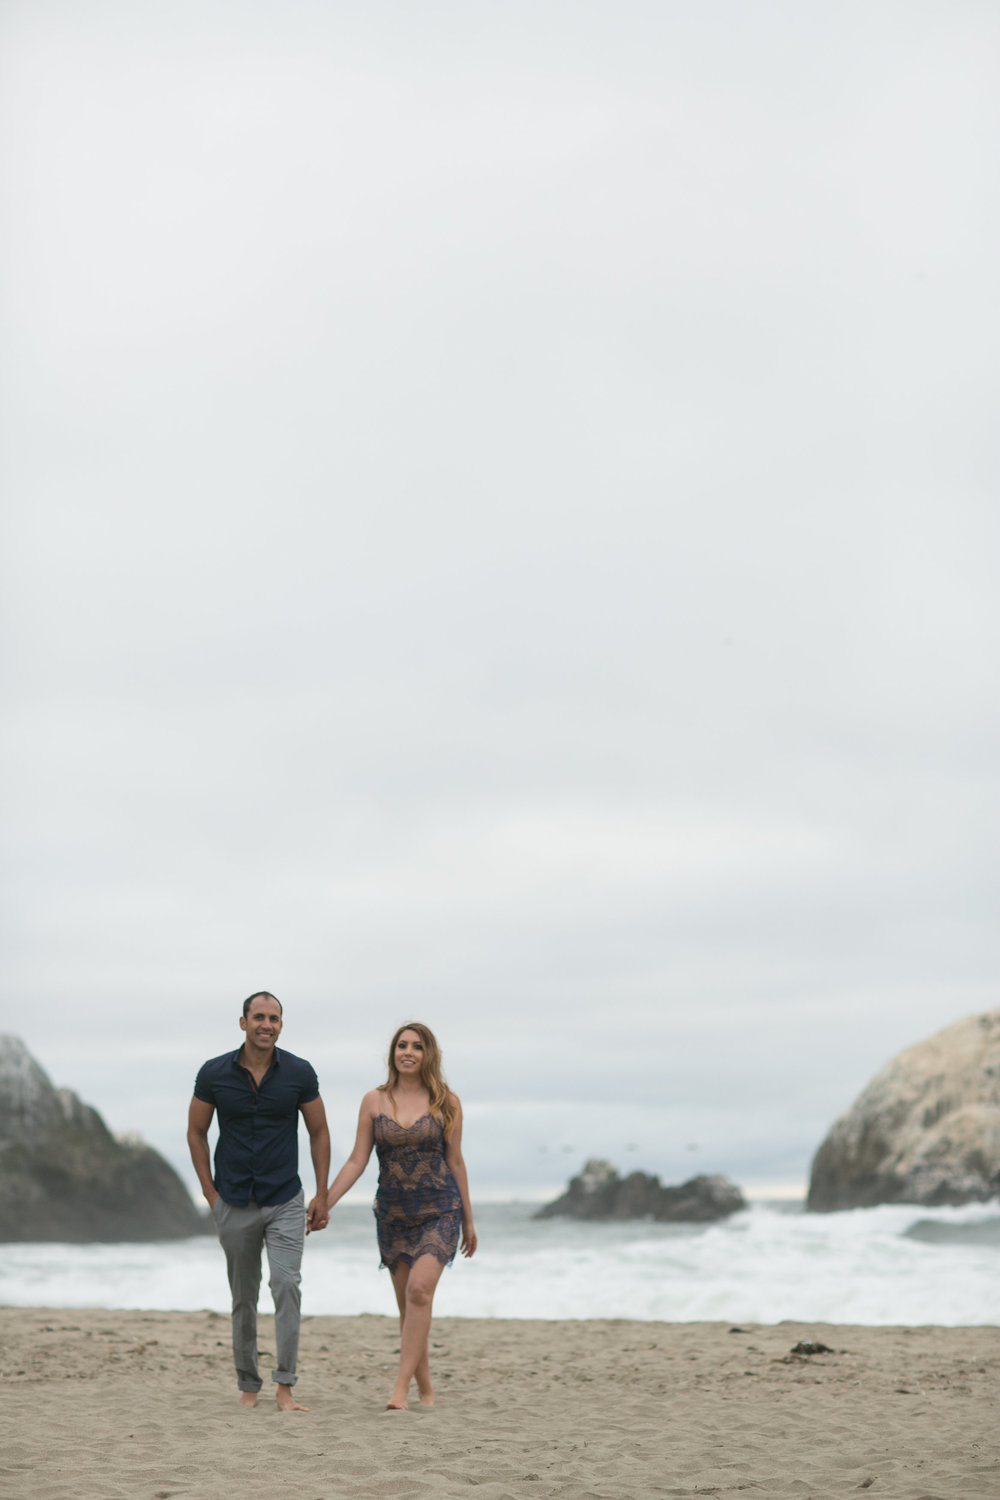 crissy field engagement session david kim photography 5.jpg